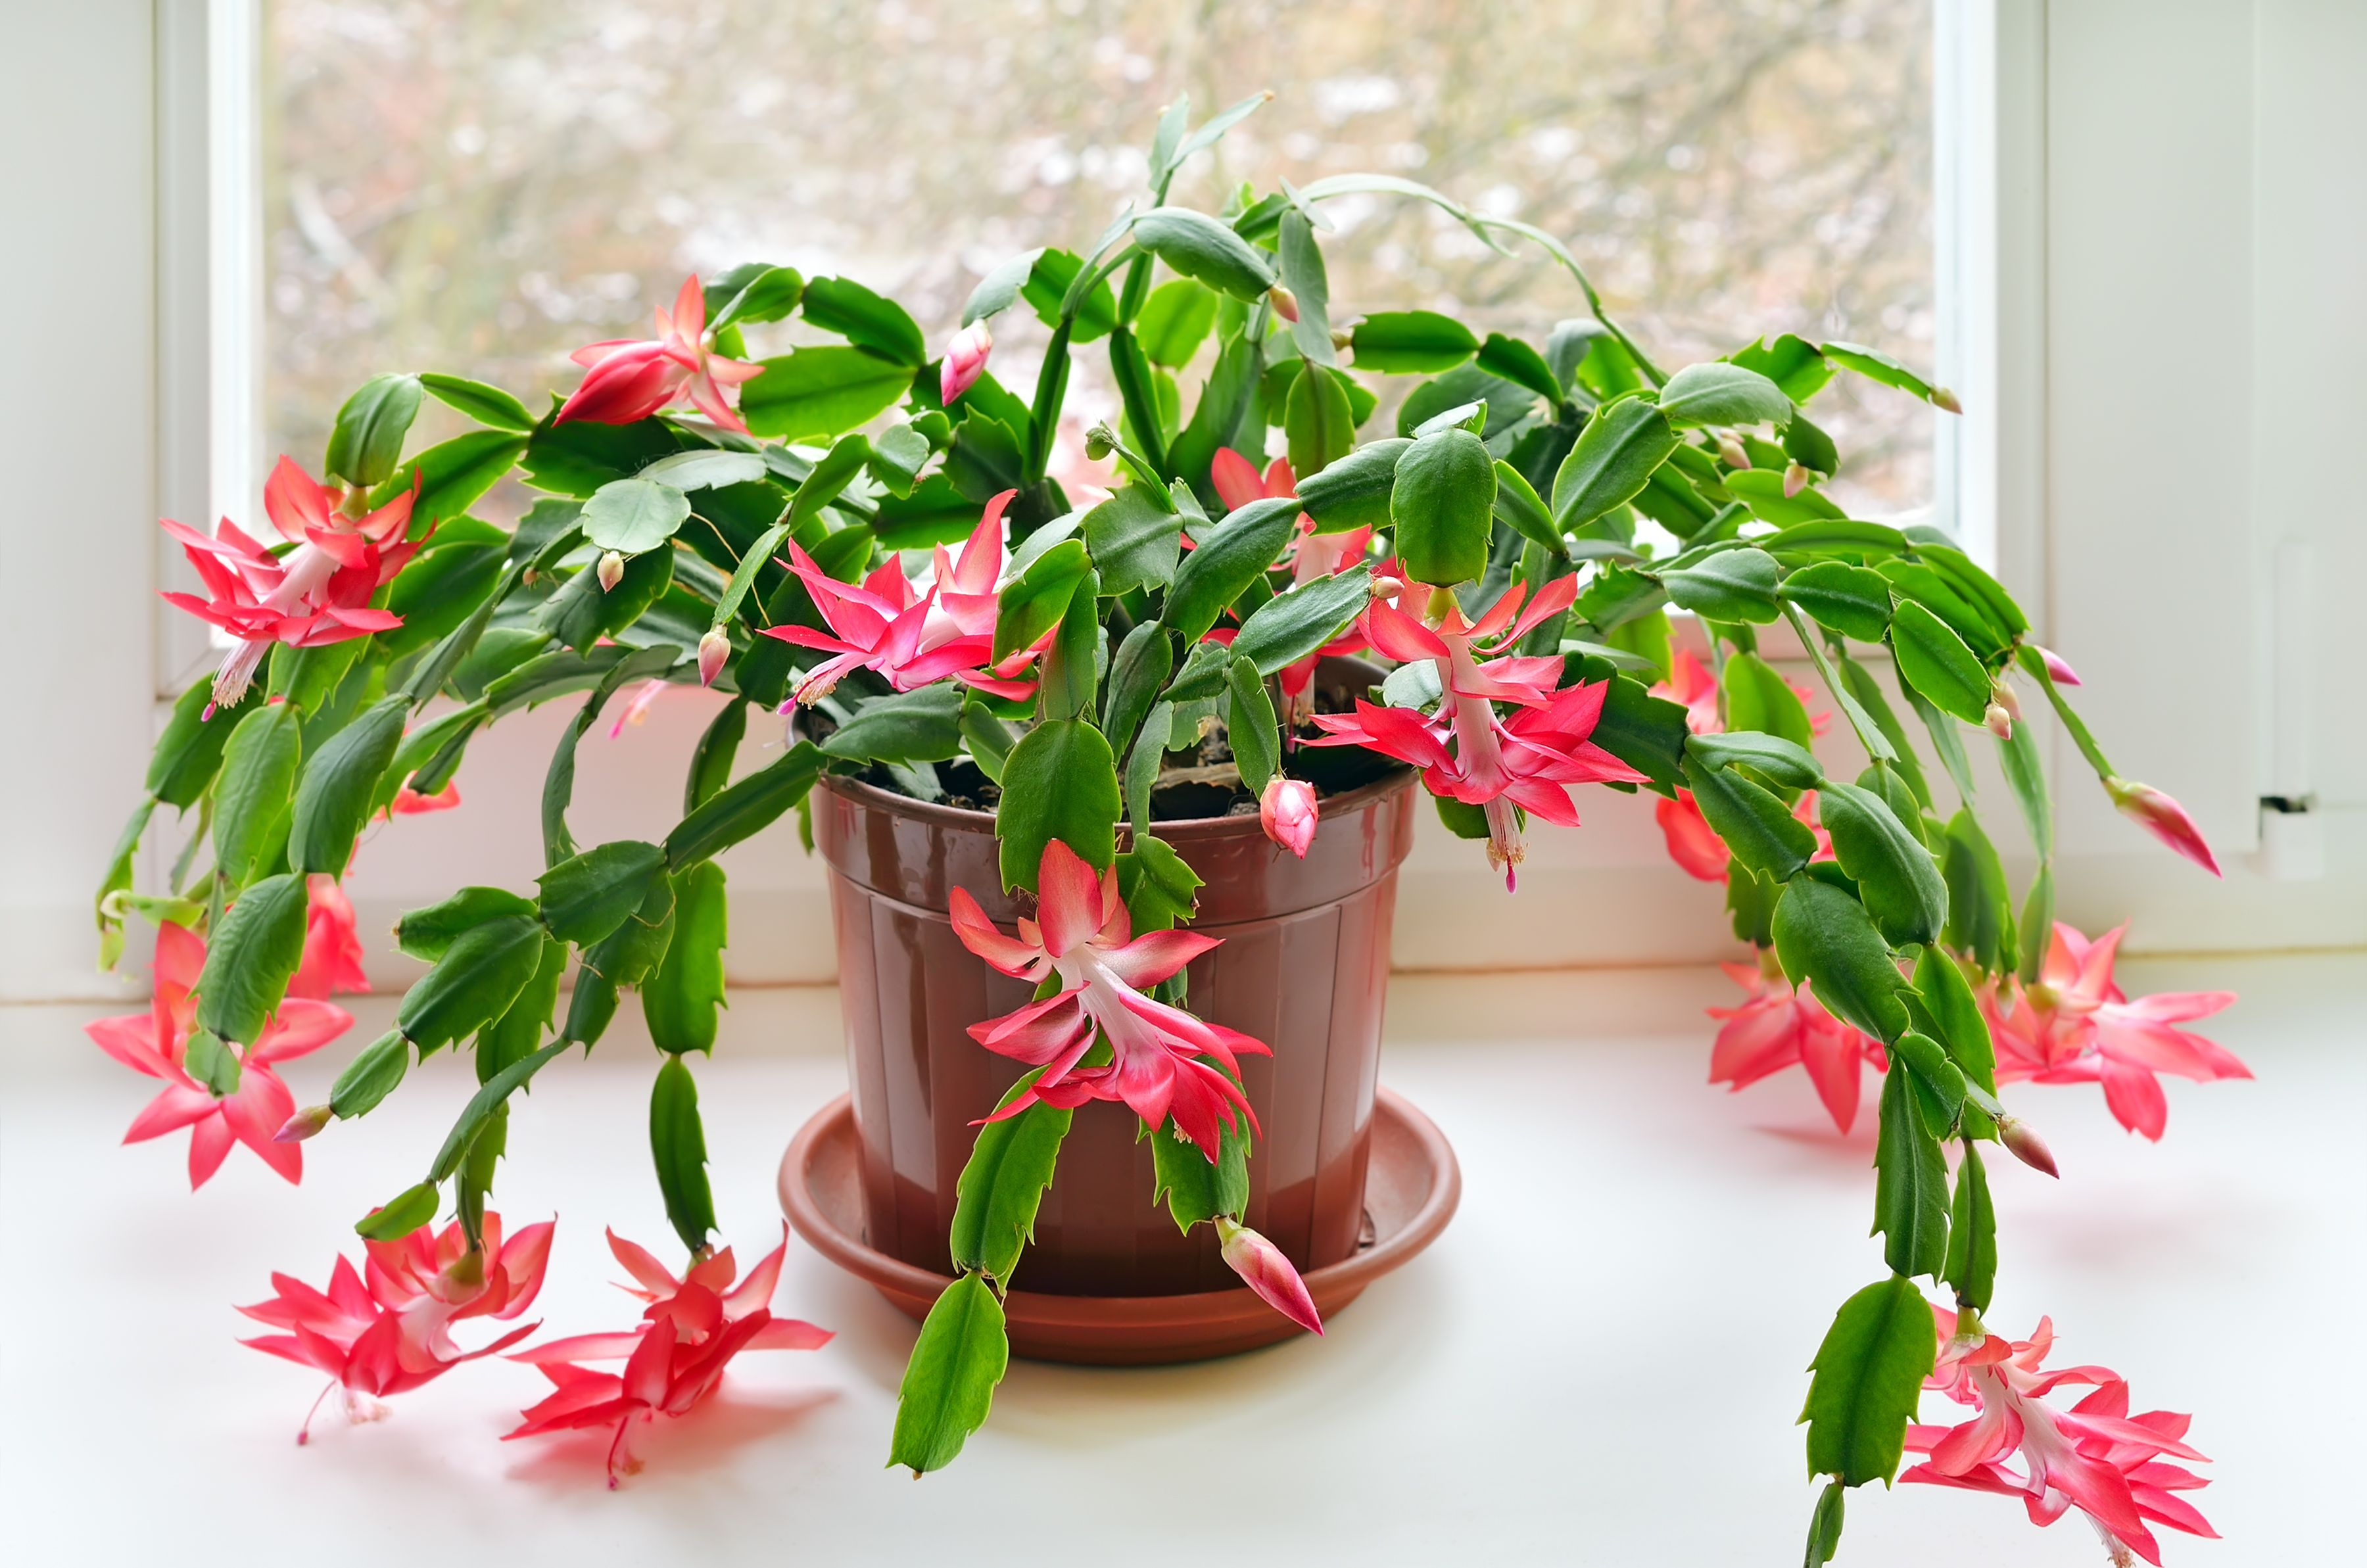 How To Care For Christmas Cactus Indoors Plant Tips